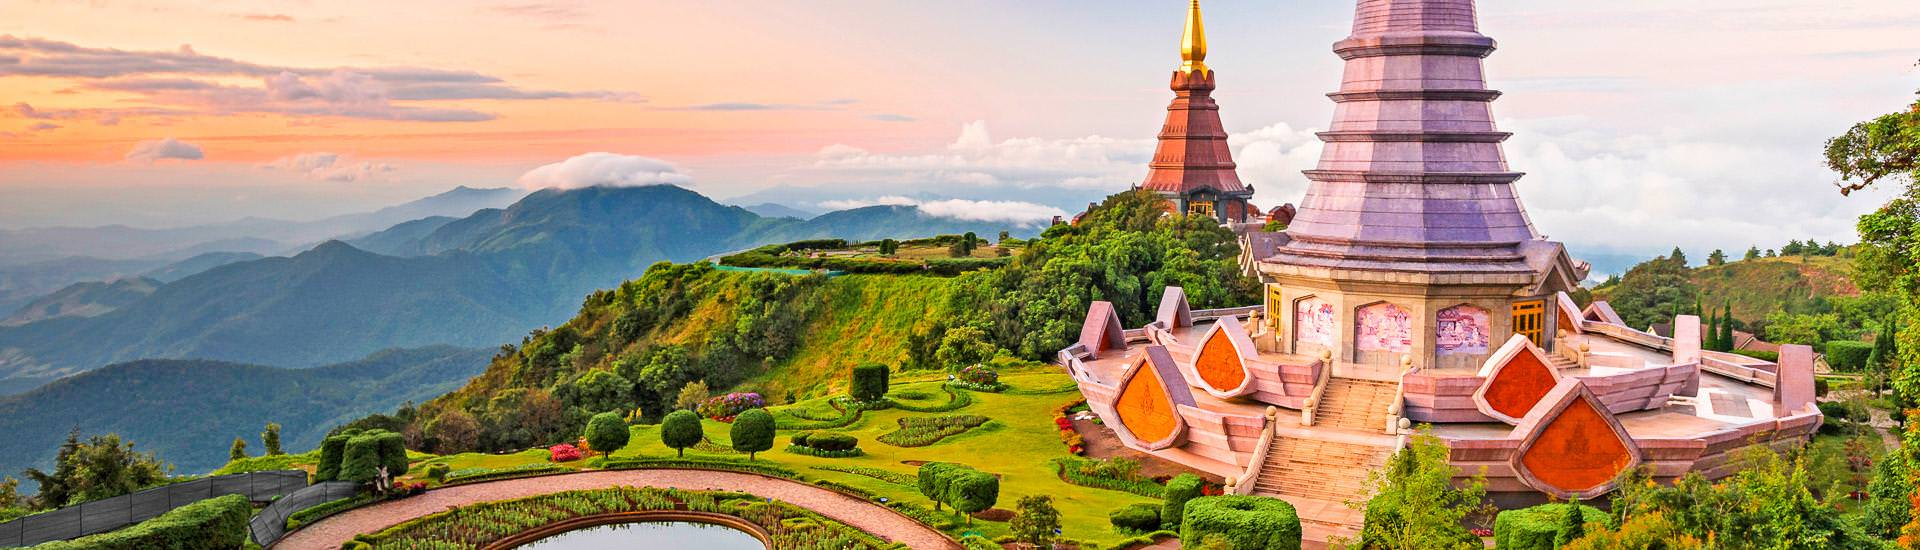 Nationalpark Doi Inthanon in Chiang Mai (© Dirk Bleyer / Chamäleon)